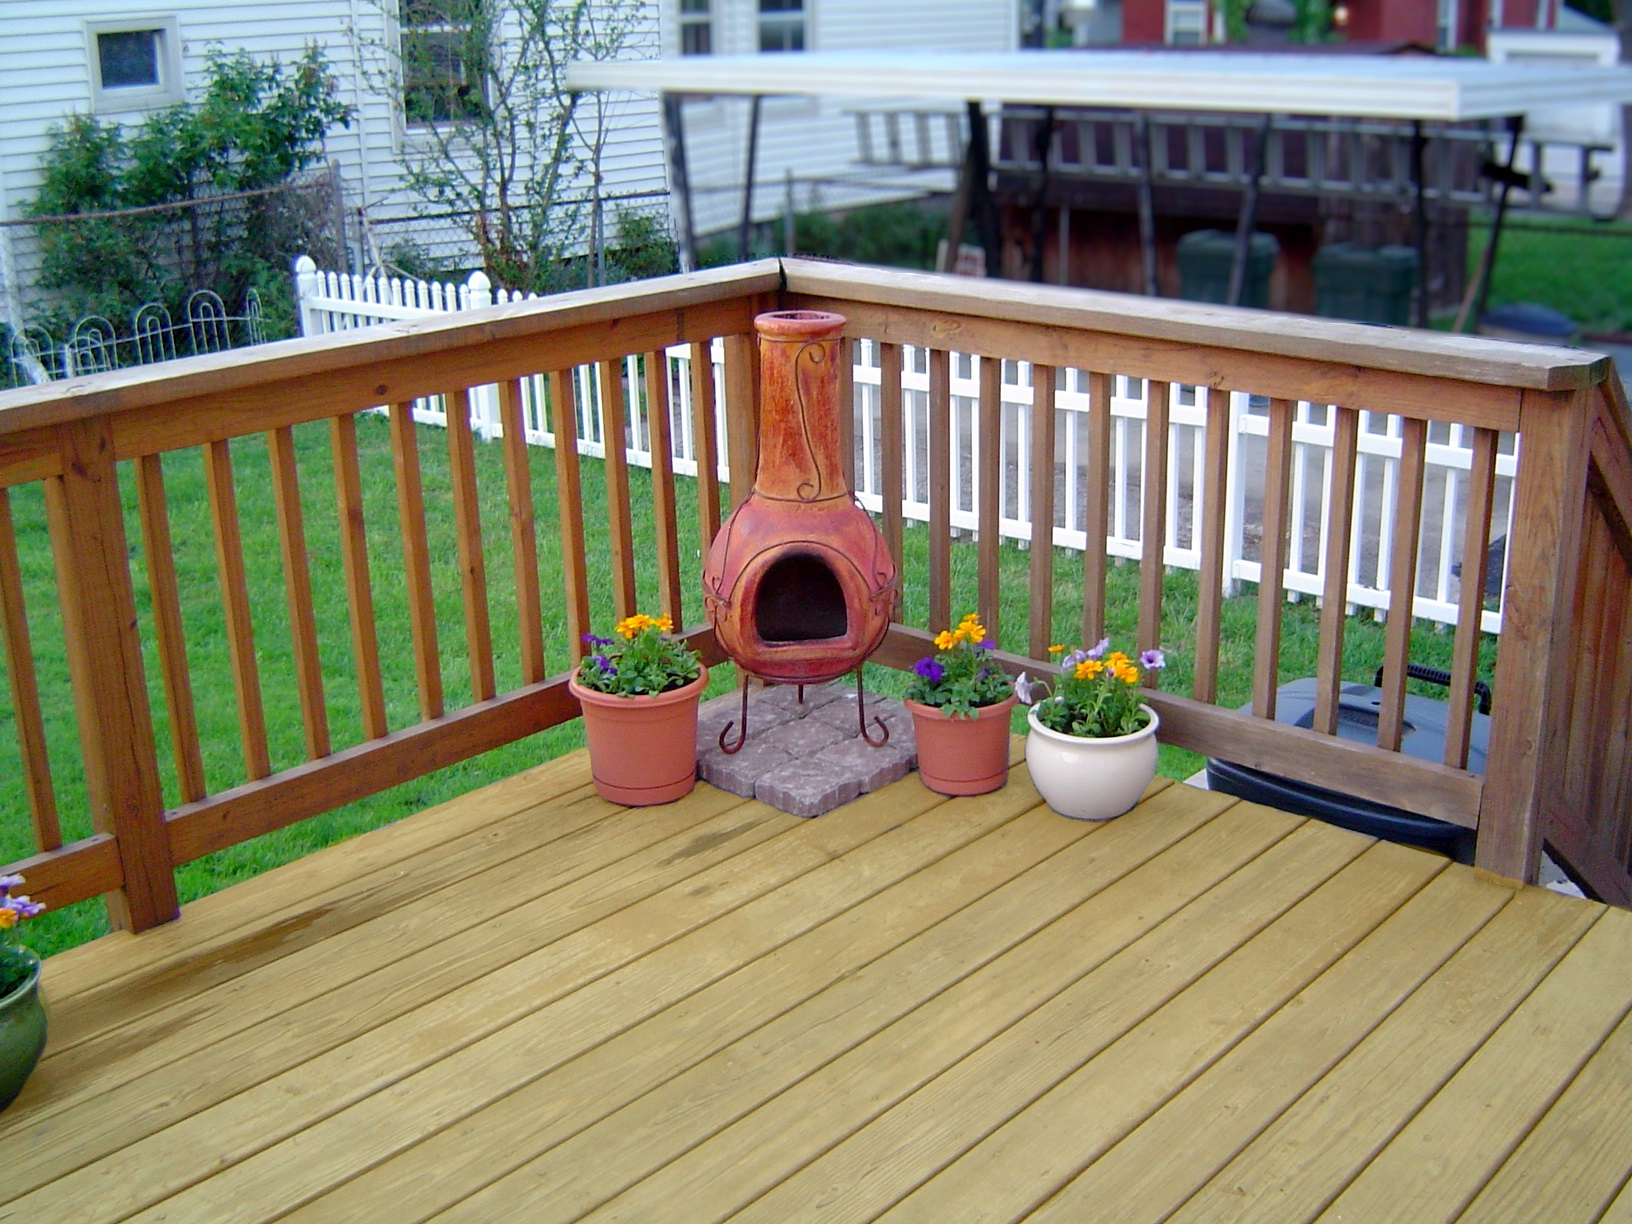 Deck Home Garden Decoration in dimensions 1632 X 1224